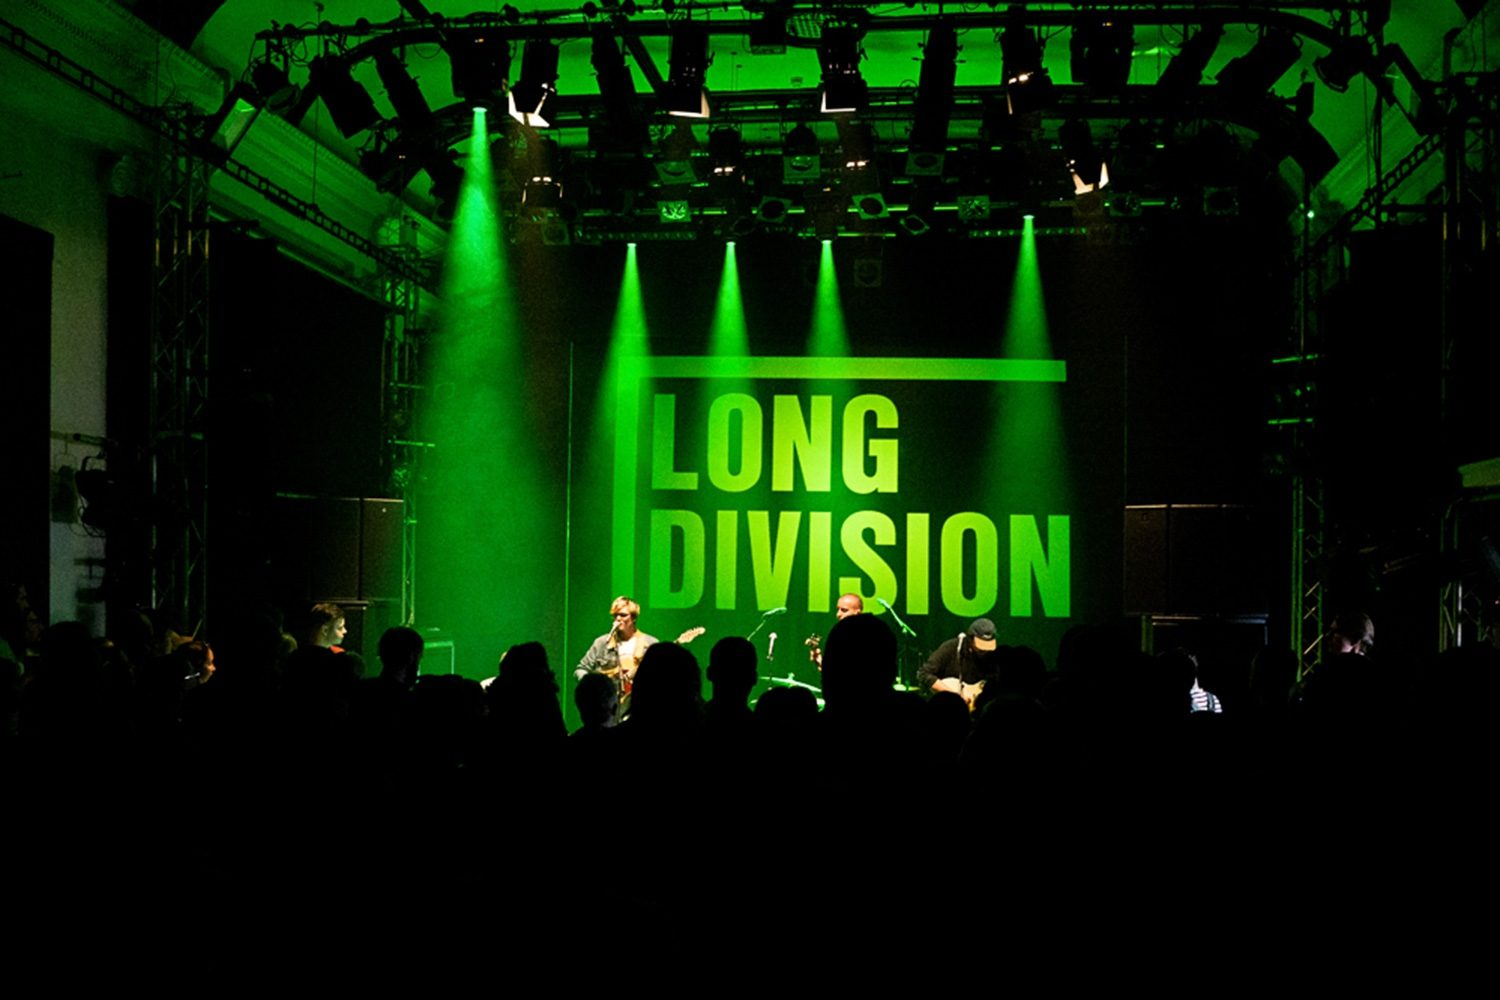 Wakefield festival Long Division has postponed this year's event until 2021